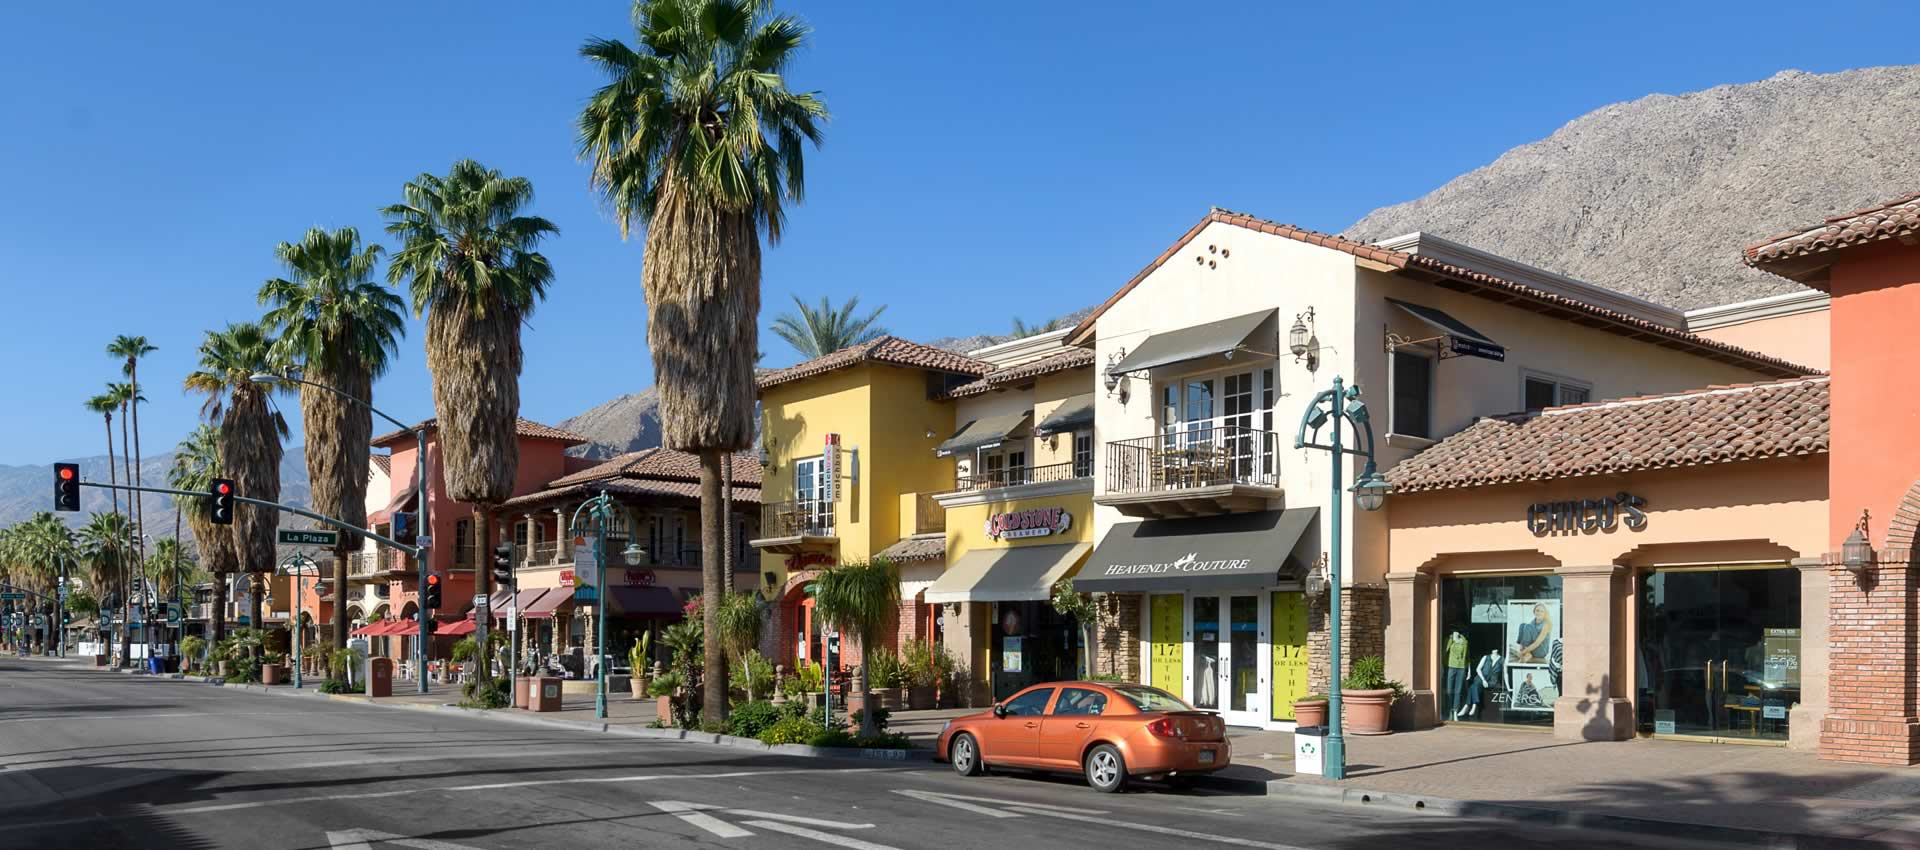 palm-springs-town